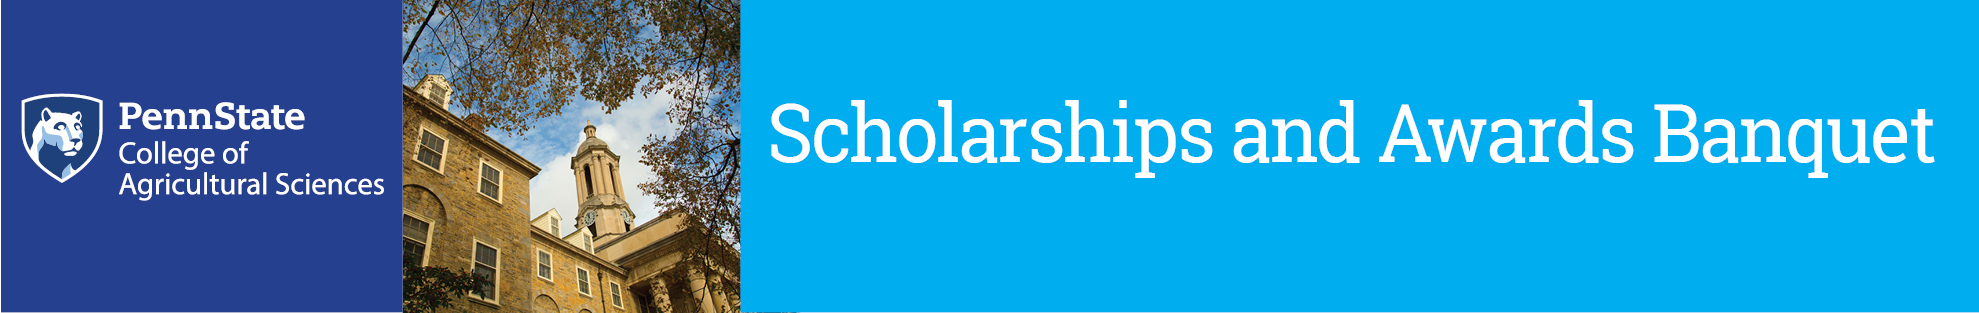 2016 Scholarships and Awards Banquet